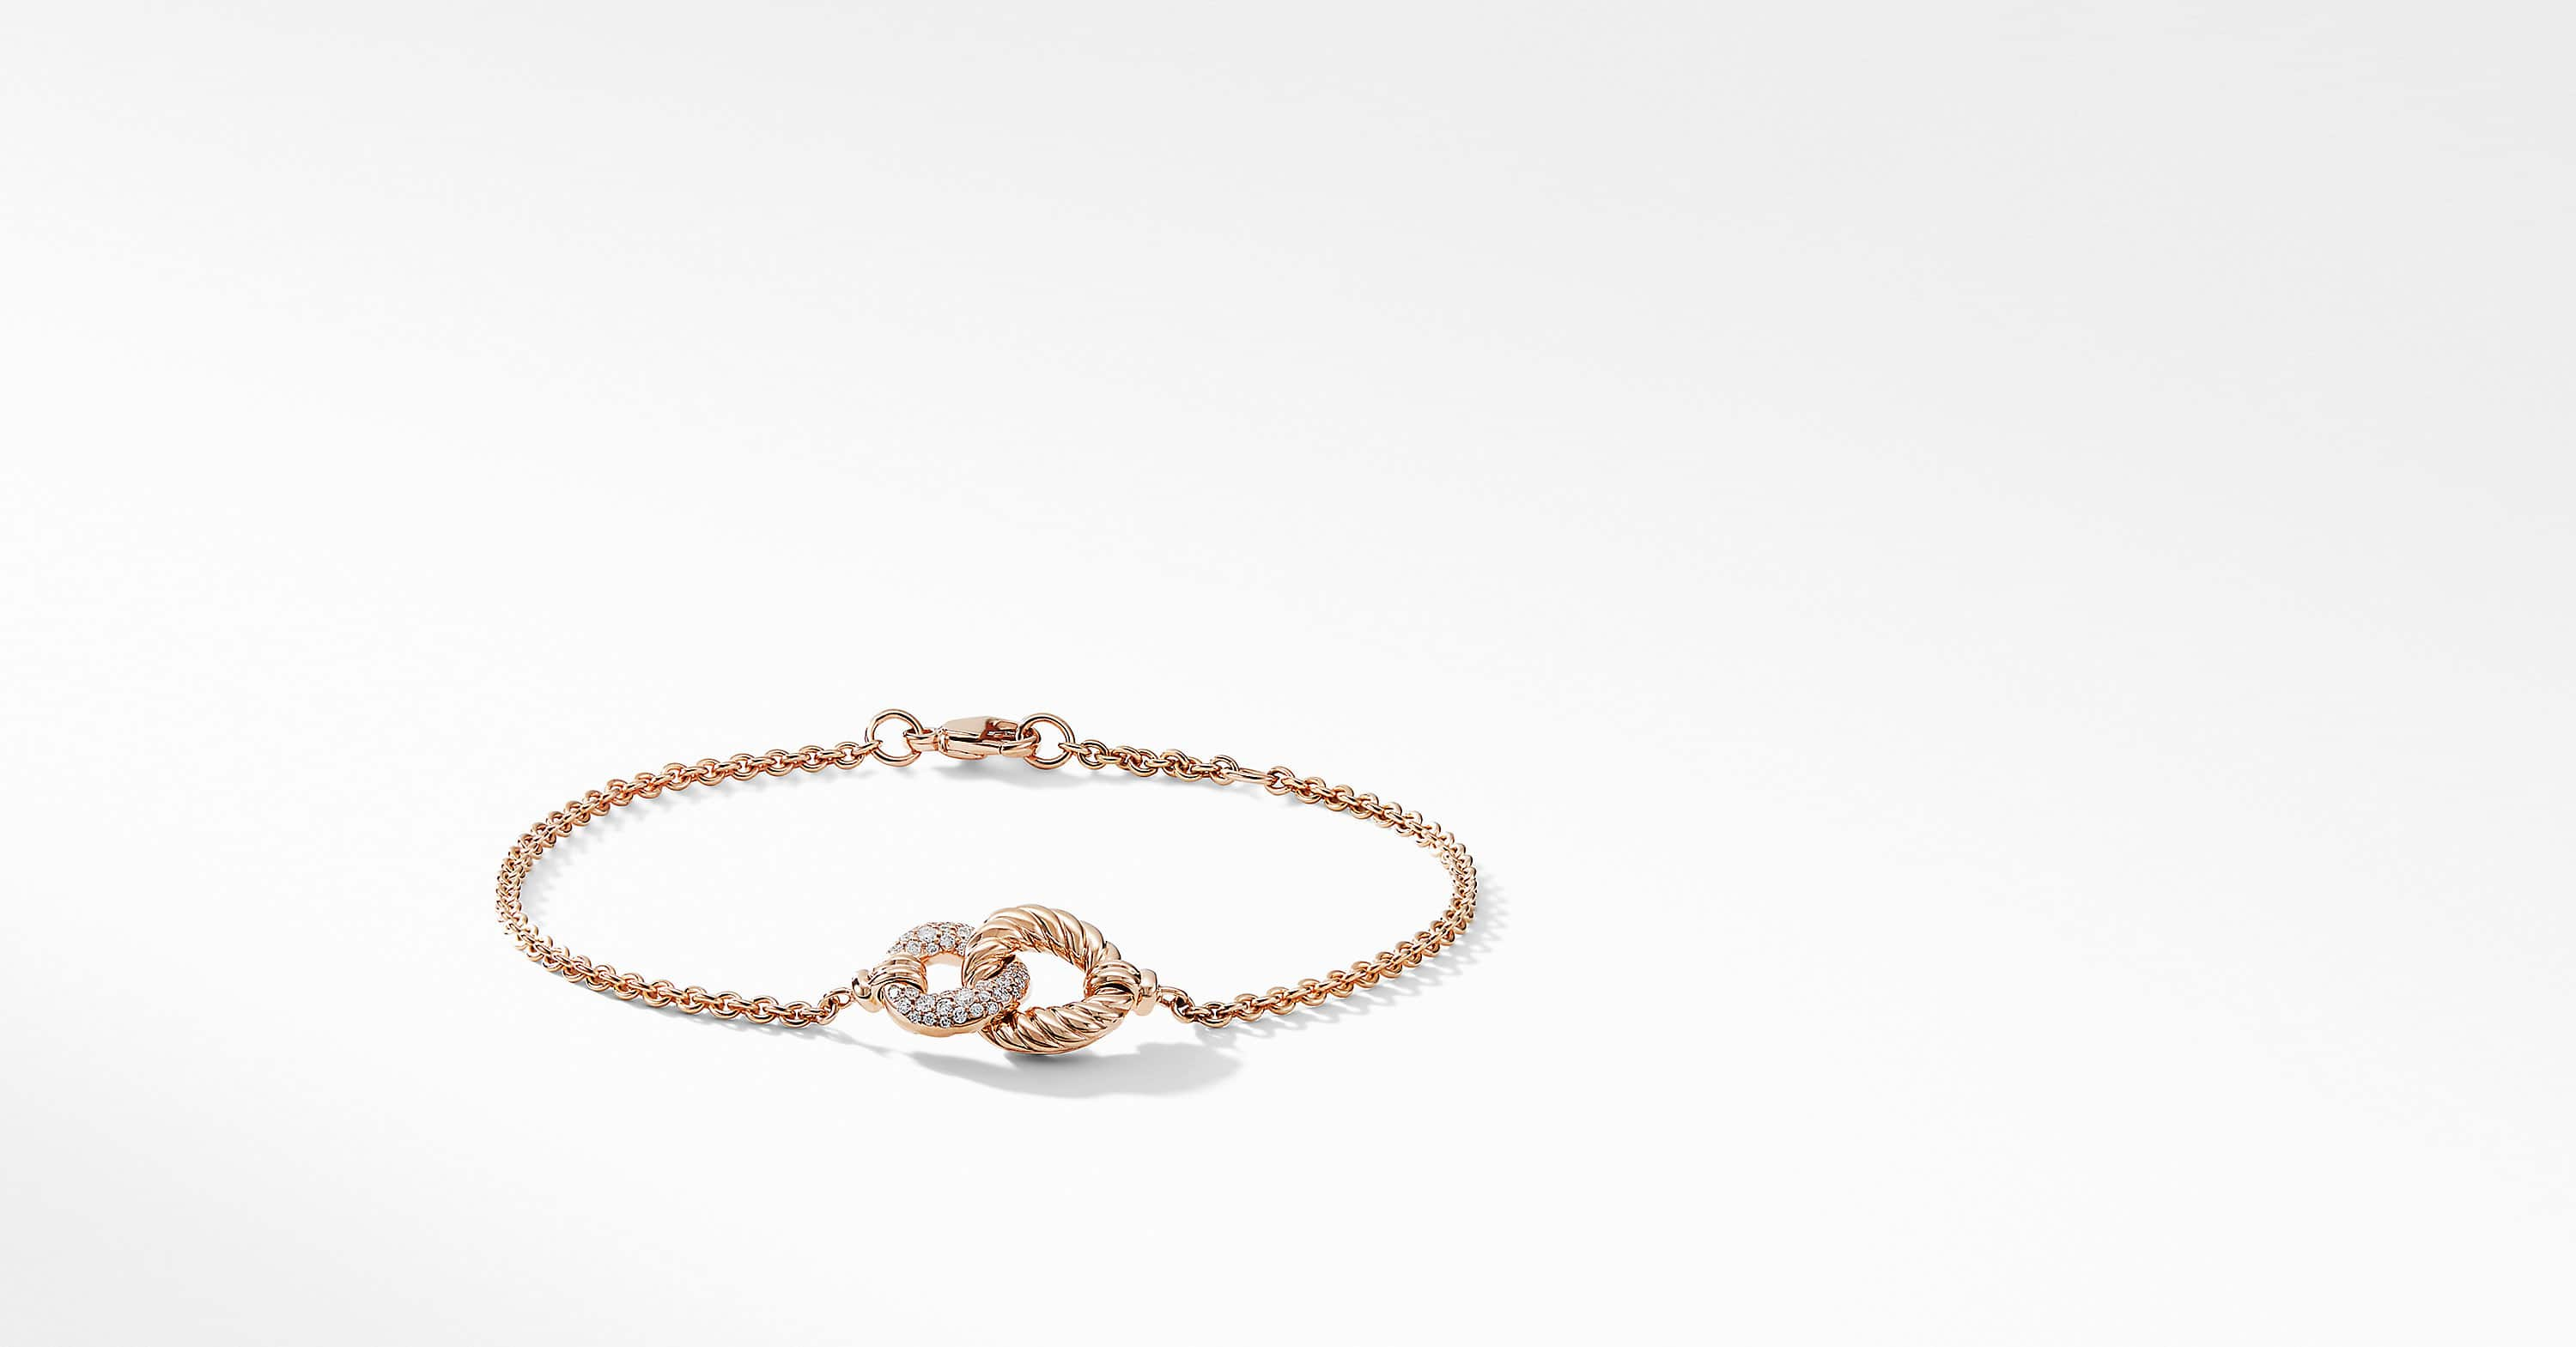 Belmont Curb Link Pendant Bracelet with Diamonds in 18K Rose Gold